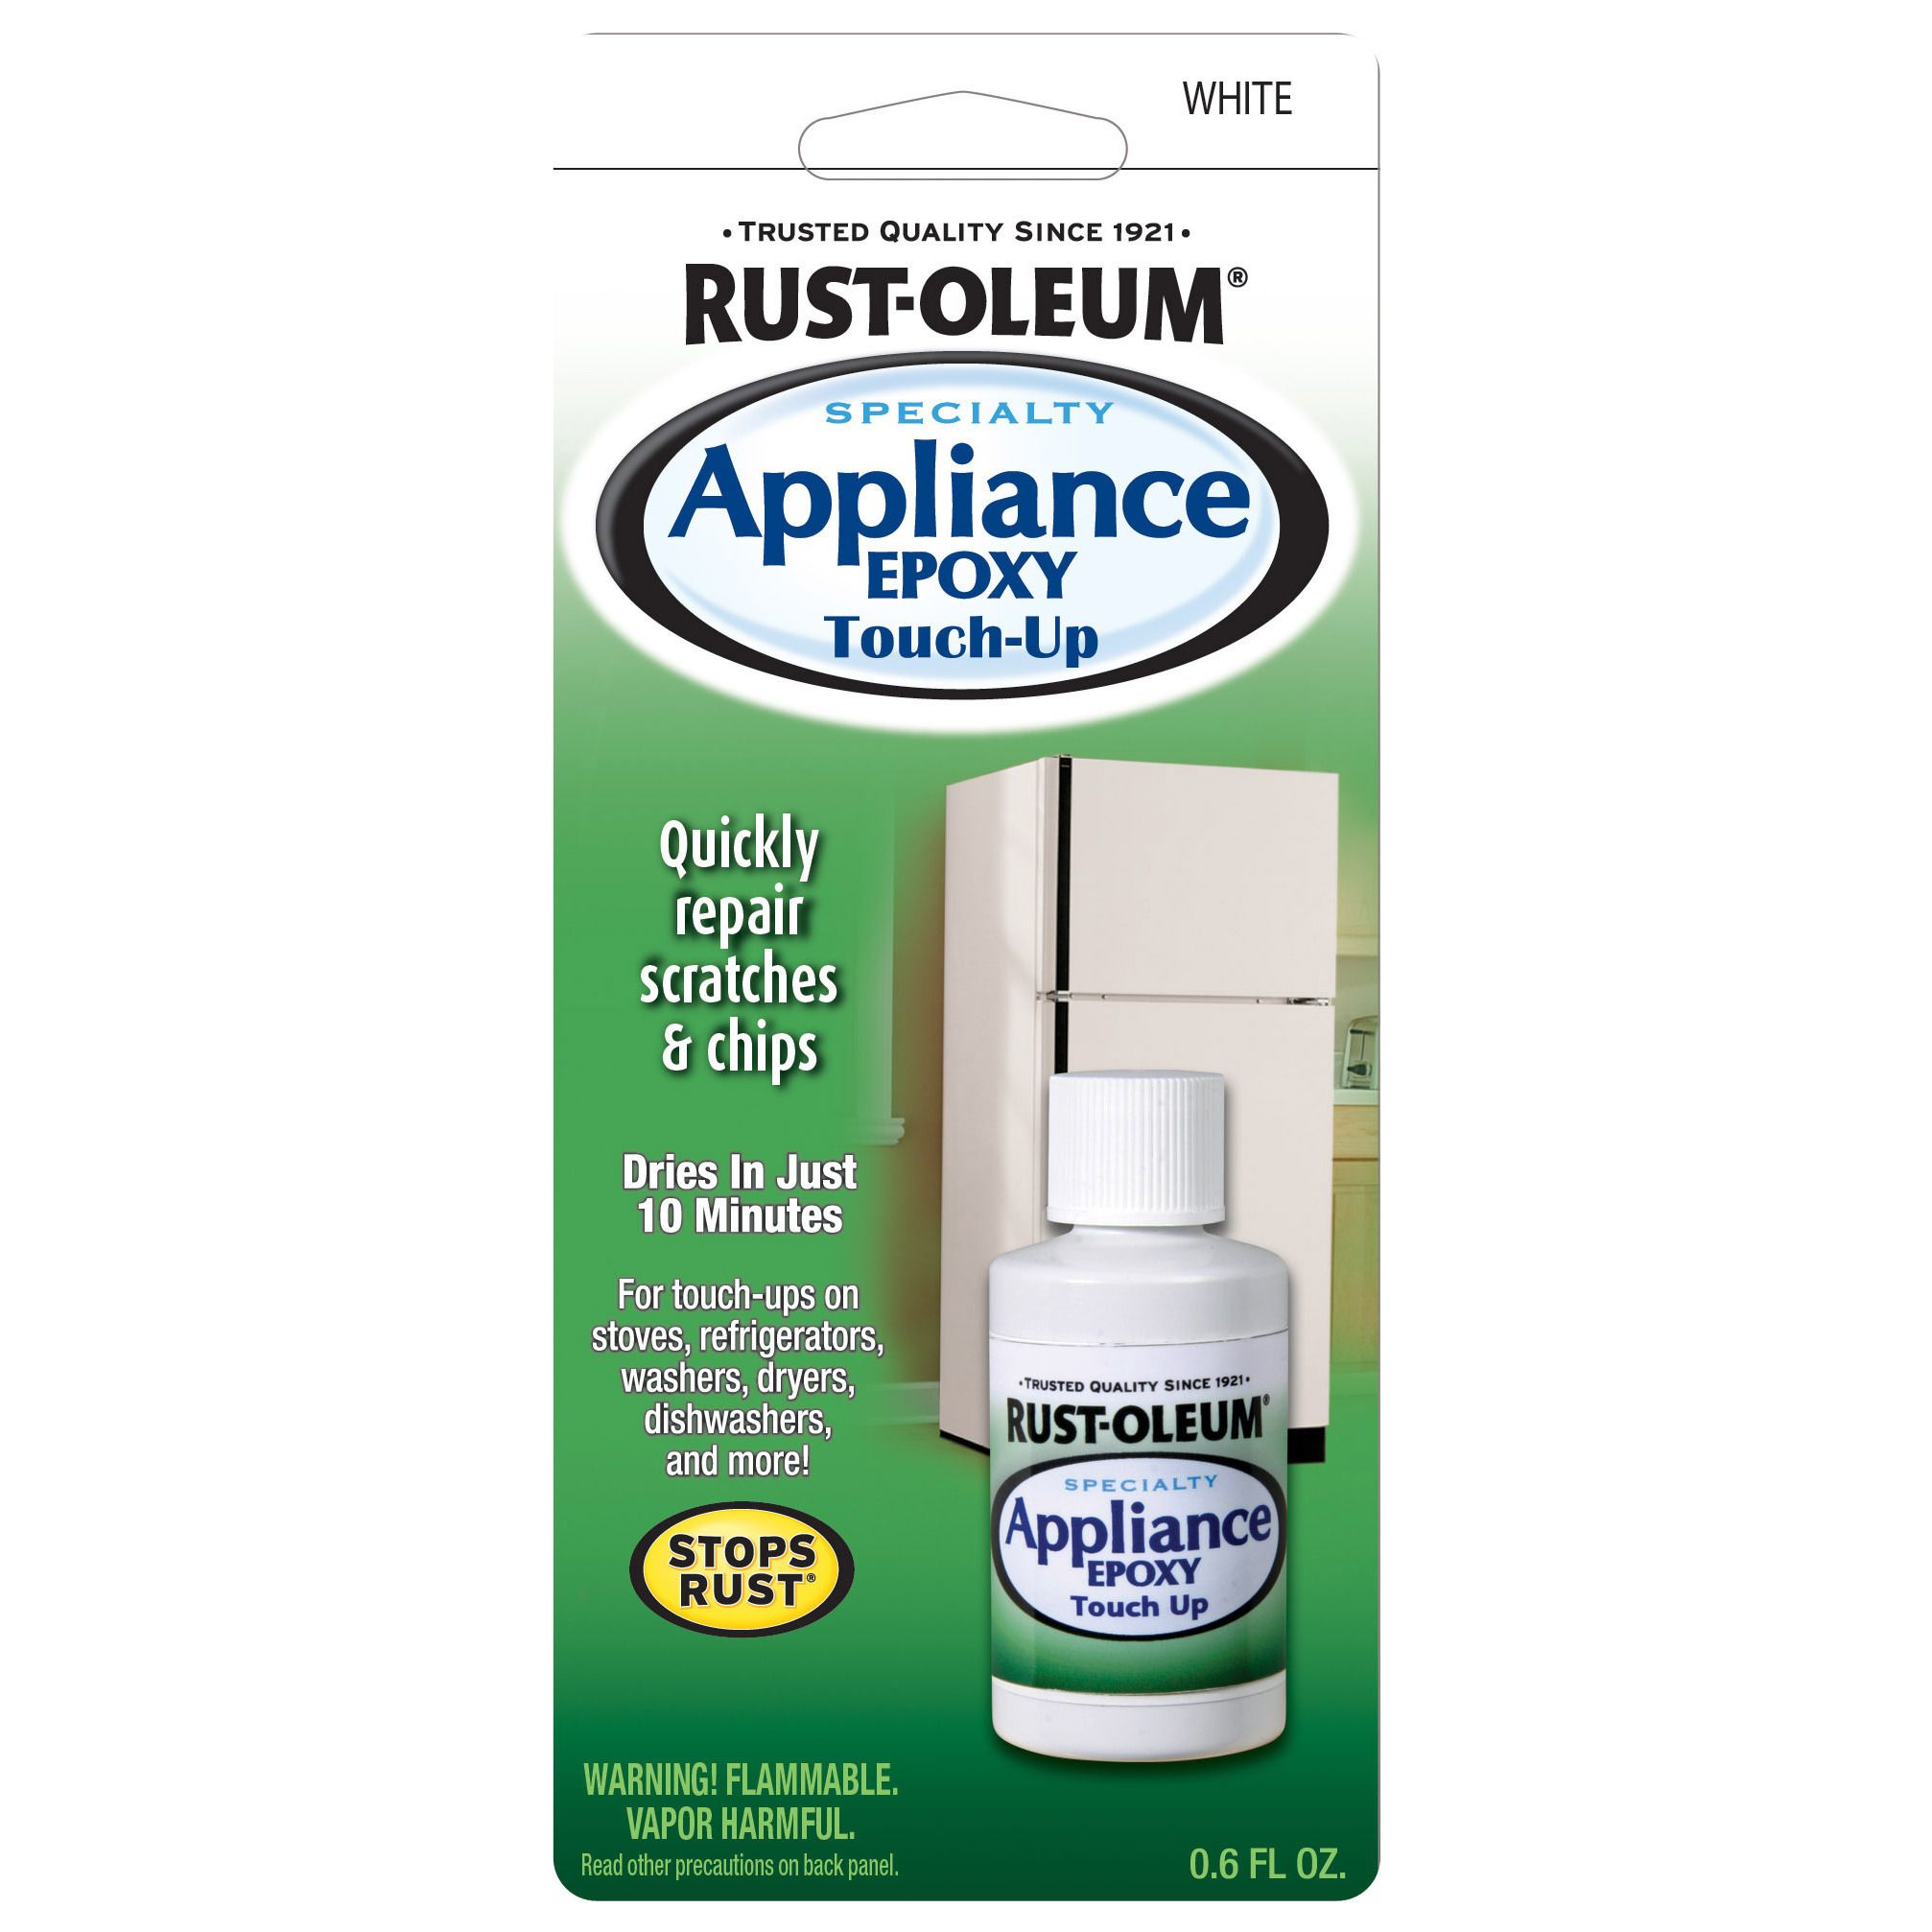 Rustoleum 203000 0.6 Oz White Specialty Appliance Epoxy Touch Up ...